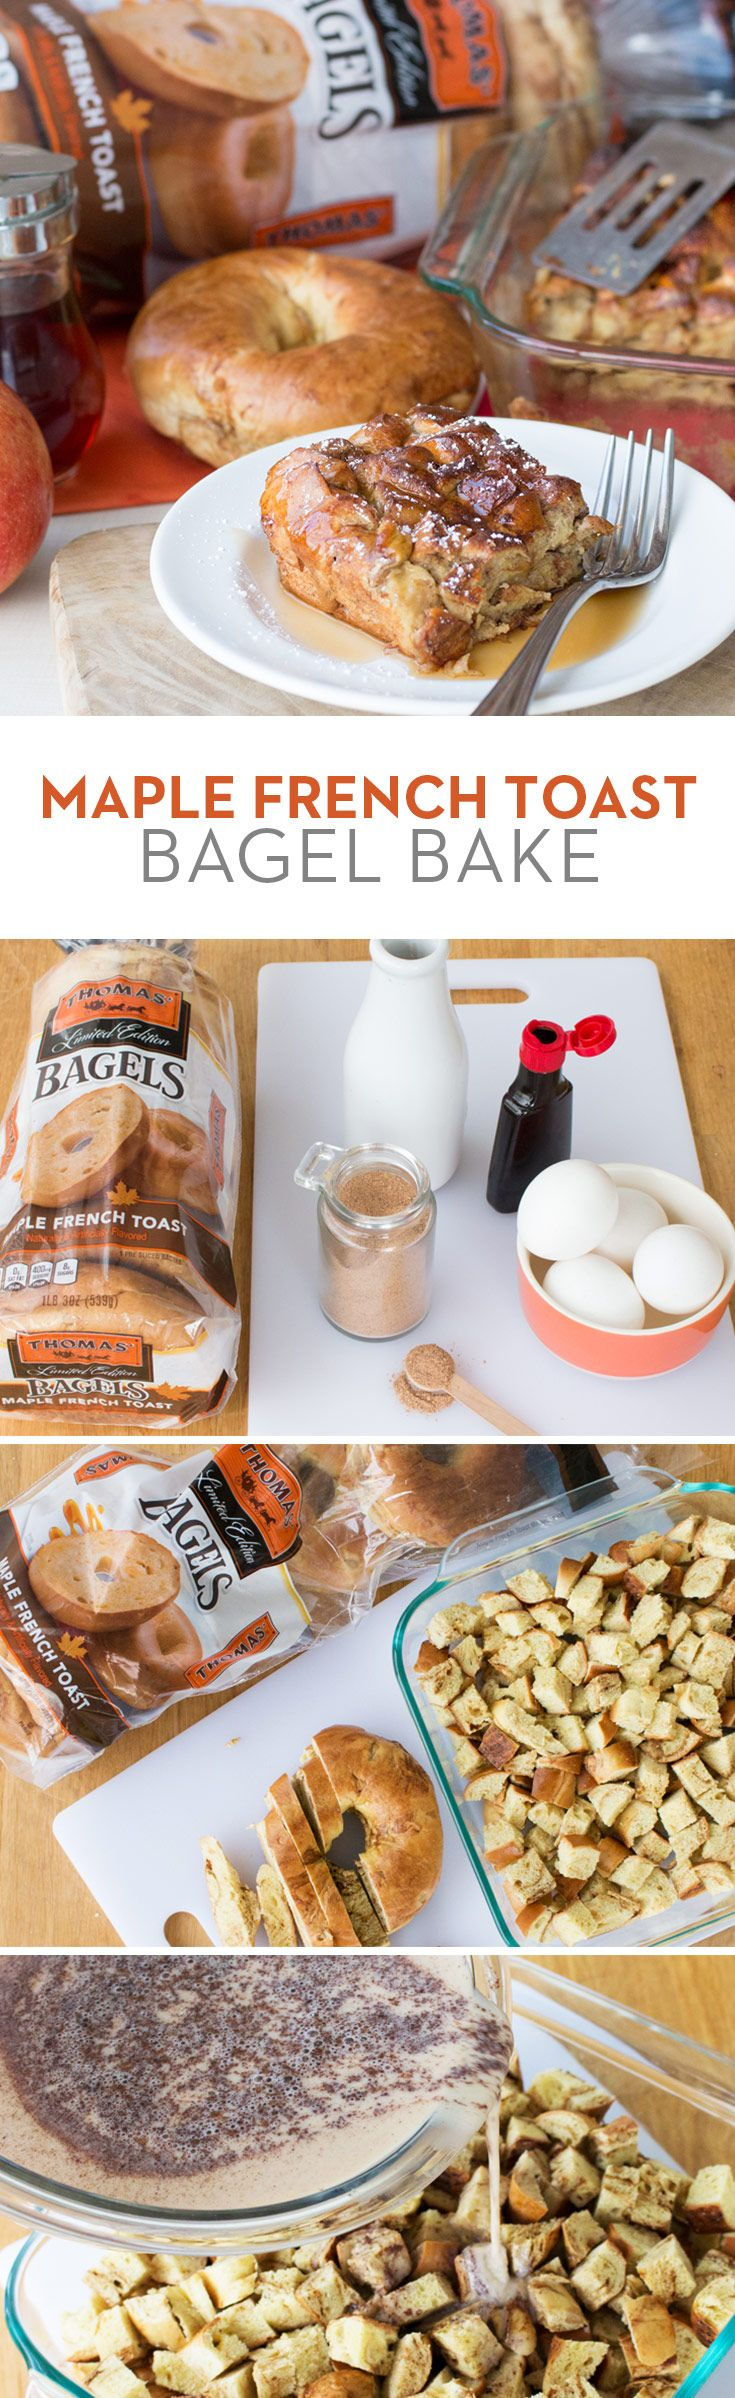 25+ Best Ideas About Bagel Bagel On Pinterest  Bagel Toppings, Bagels And  Bagel Party Ideas